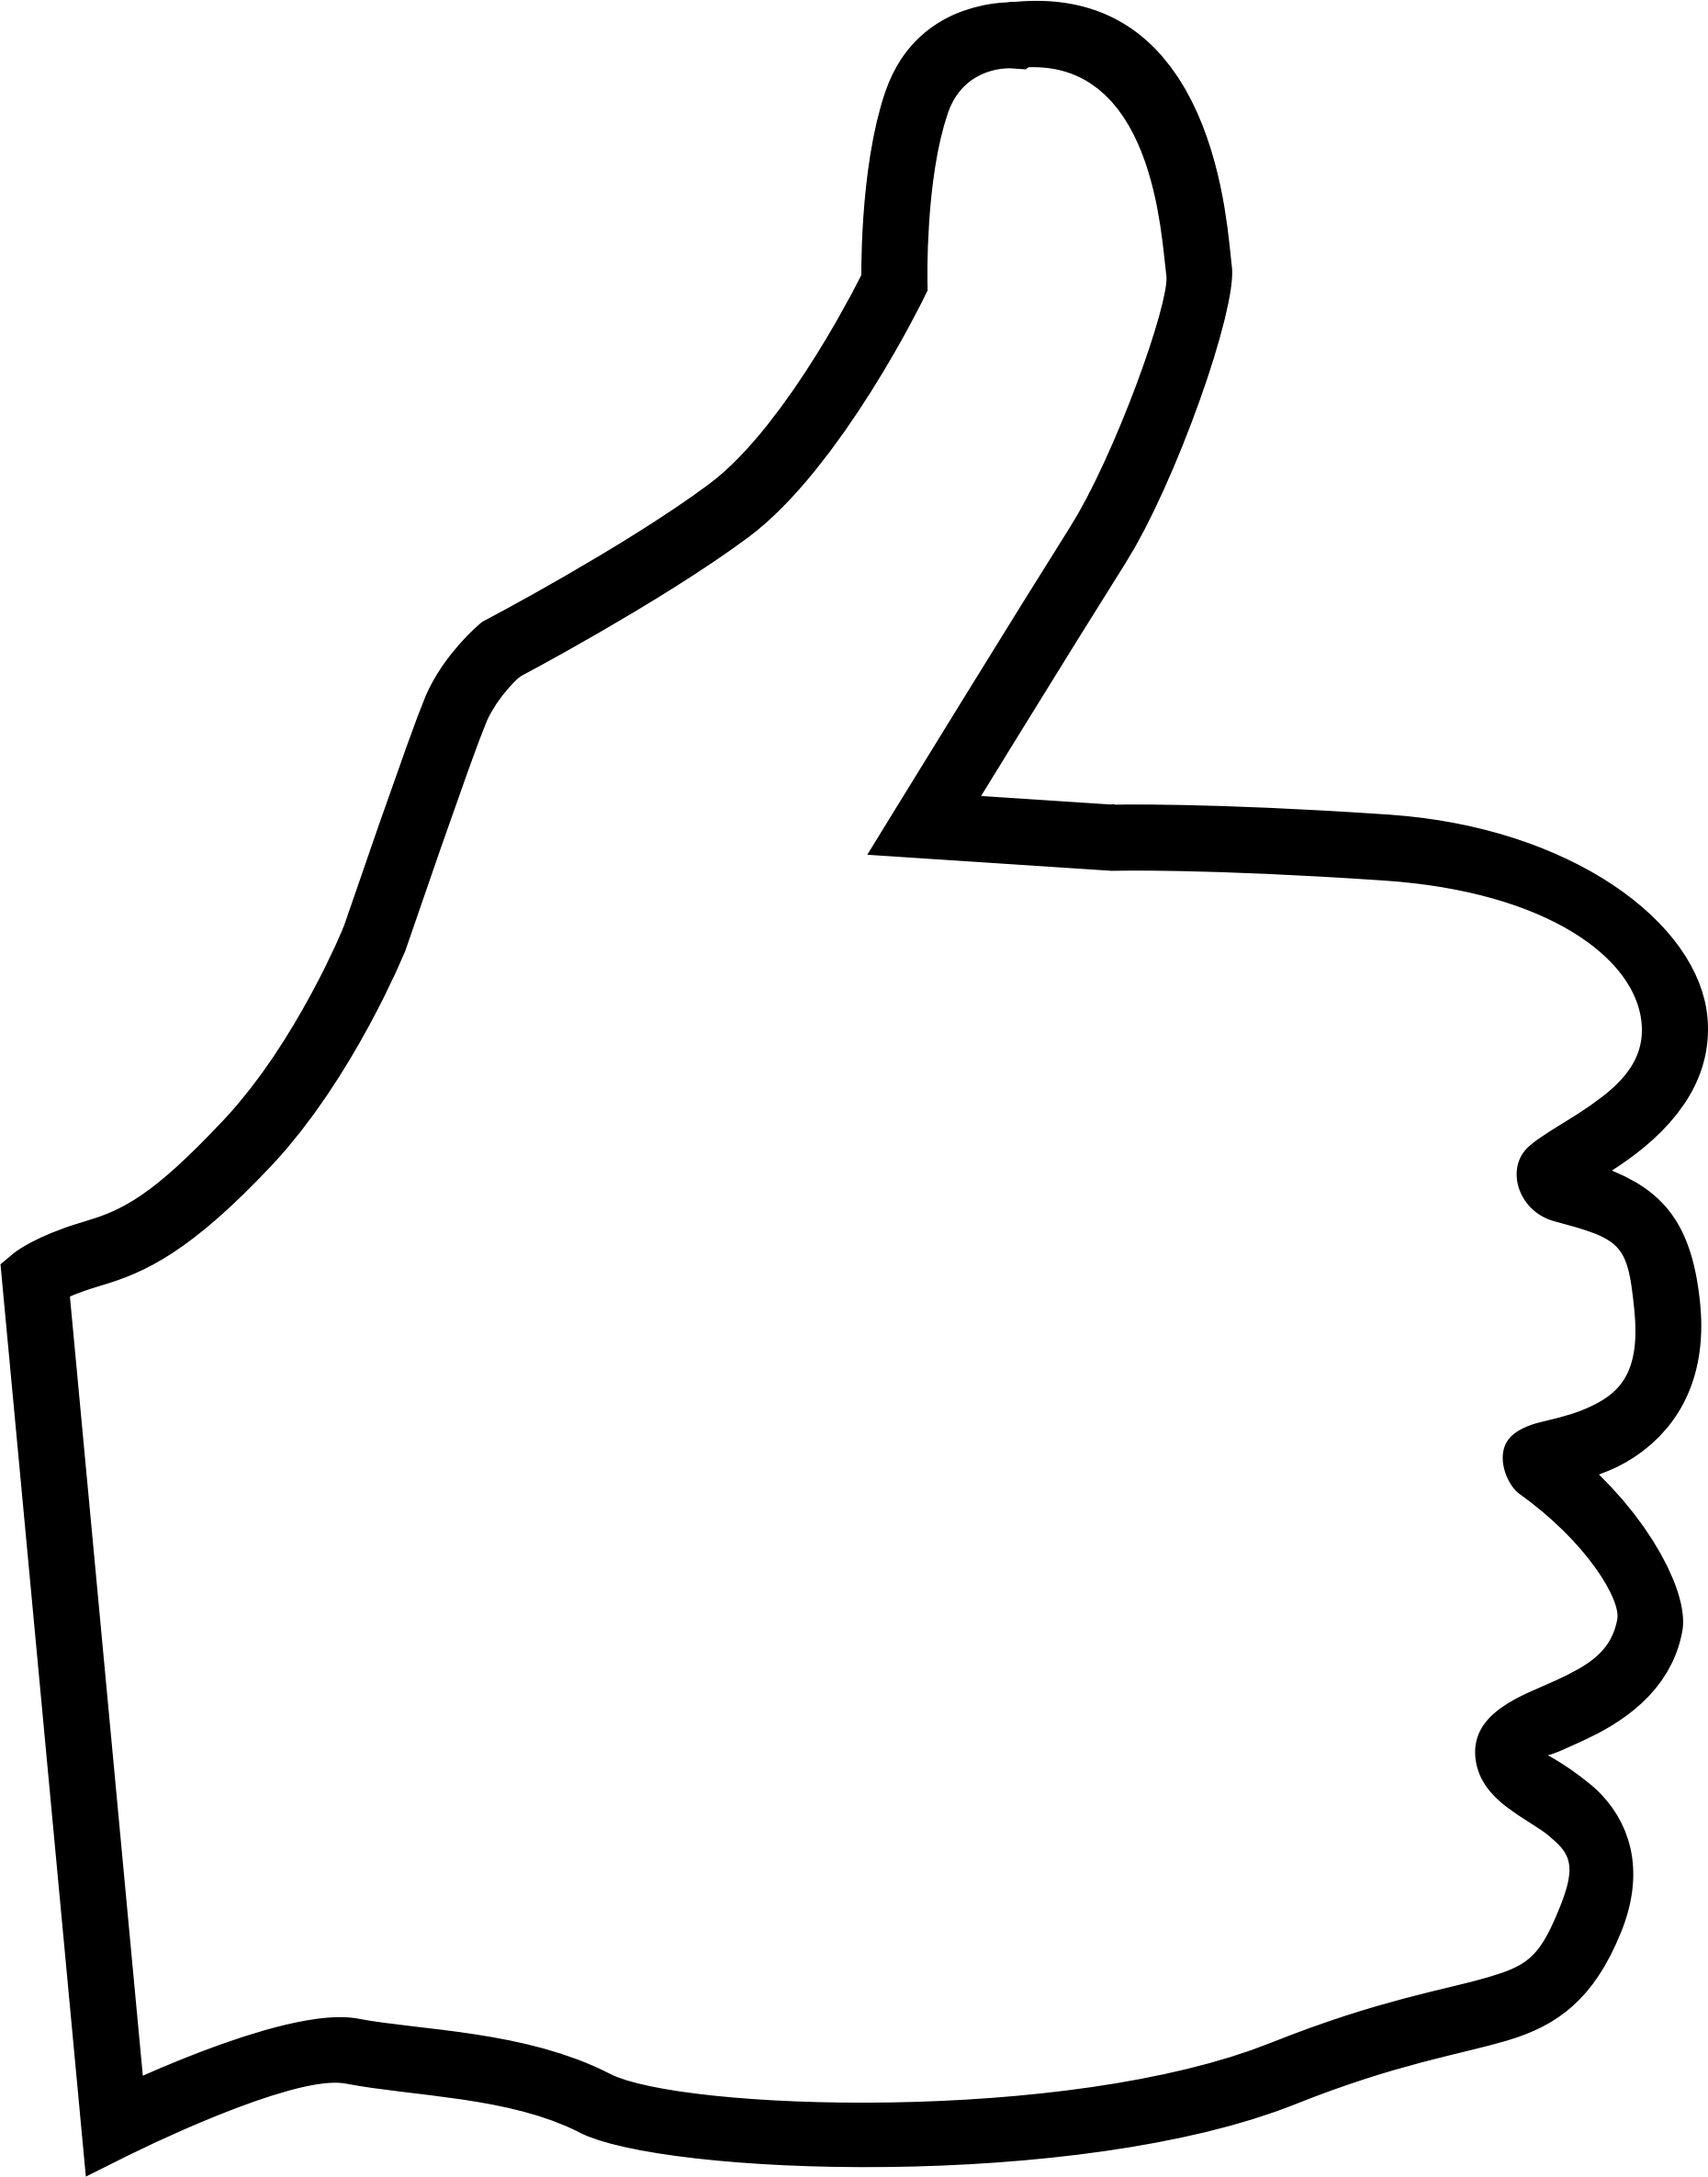 Image thumbs png growtopia. Up vector black and white royalty free stock